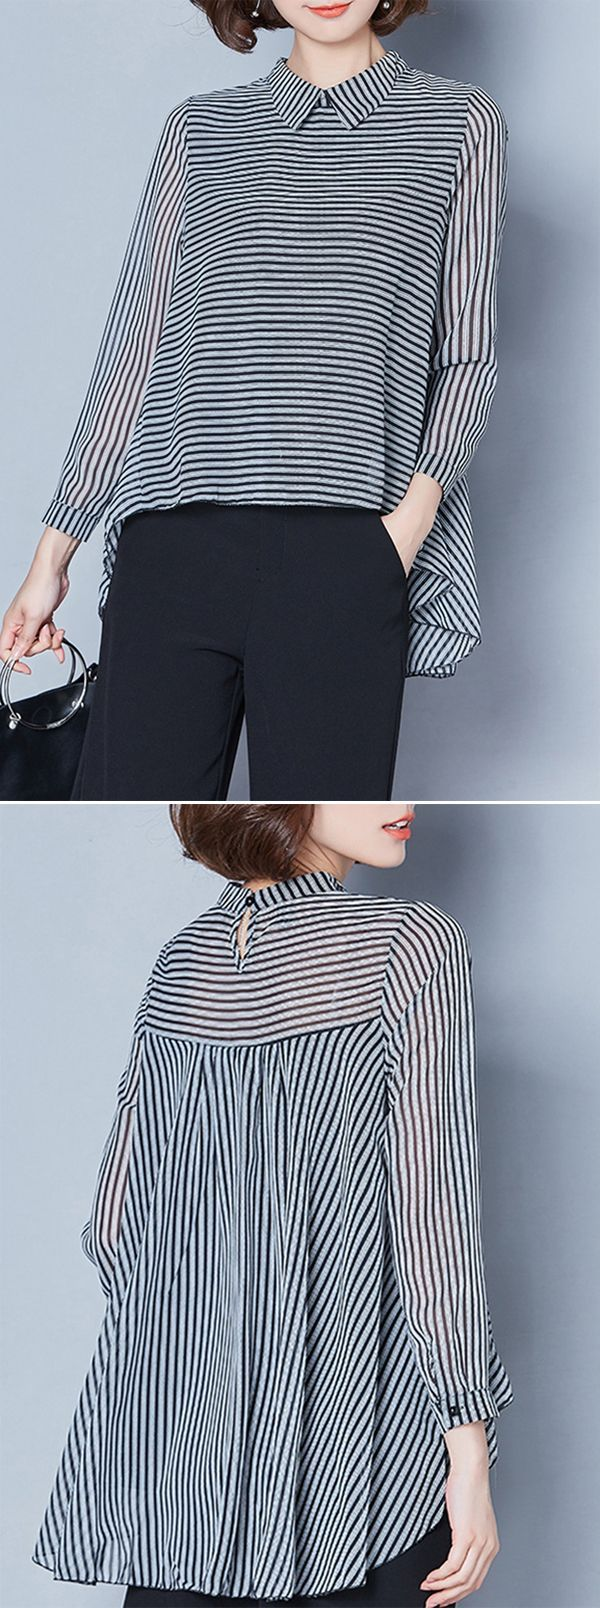 [Newchic Online Shopping] 49%OFF Casual Stripe Irregular Lapel Long Sleeve Blouses For Women - https://sorihe.com/blusademujer/2018/03/04/newchic-online-shopping-49off-casual-stripe-irregular-lapel-long-sleeve-blouses-for-women/ #women'sblouse #blouse #ladiestops #womensshirts #topsforwomen #shirtsforwomen #ladiesblouse #blackblouse #women'sshirts #womenshirt #whiteblouse #blackshirtwomens #longtopsforwomen #long tops #women'sshirtsandblouses #cutetopsforwomen #shirtsandblouses #dressytops…